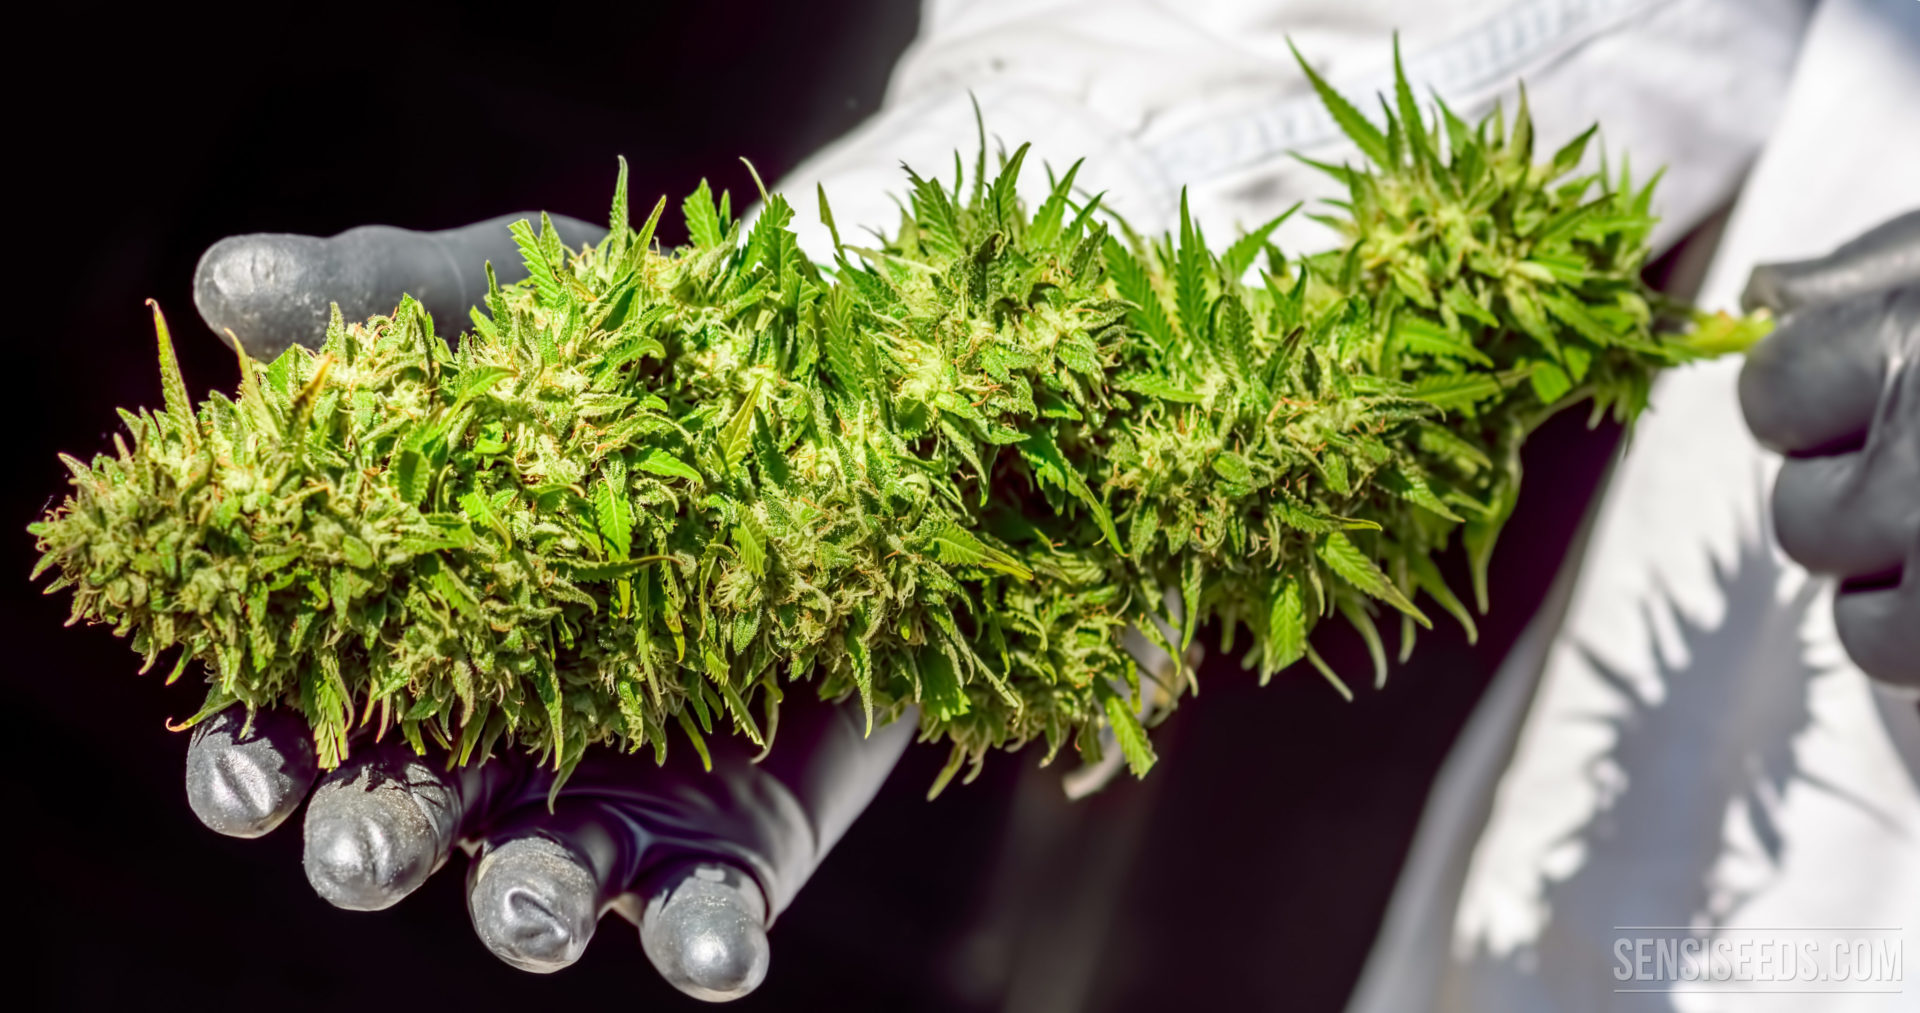 How to maximise the yield of a cannabis plant - Sensi Seeds